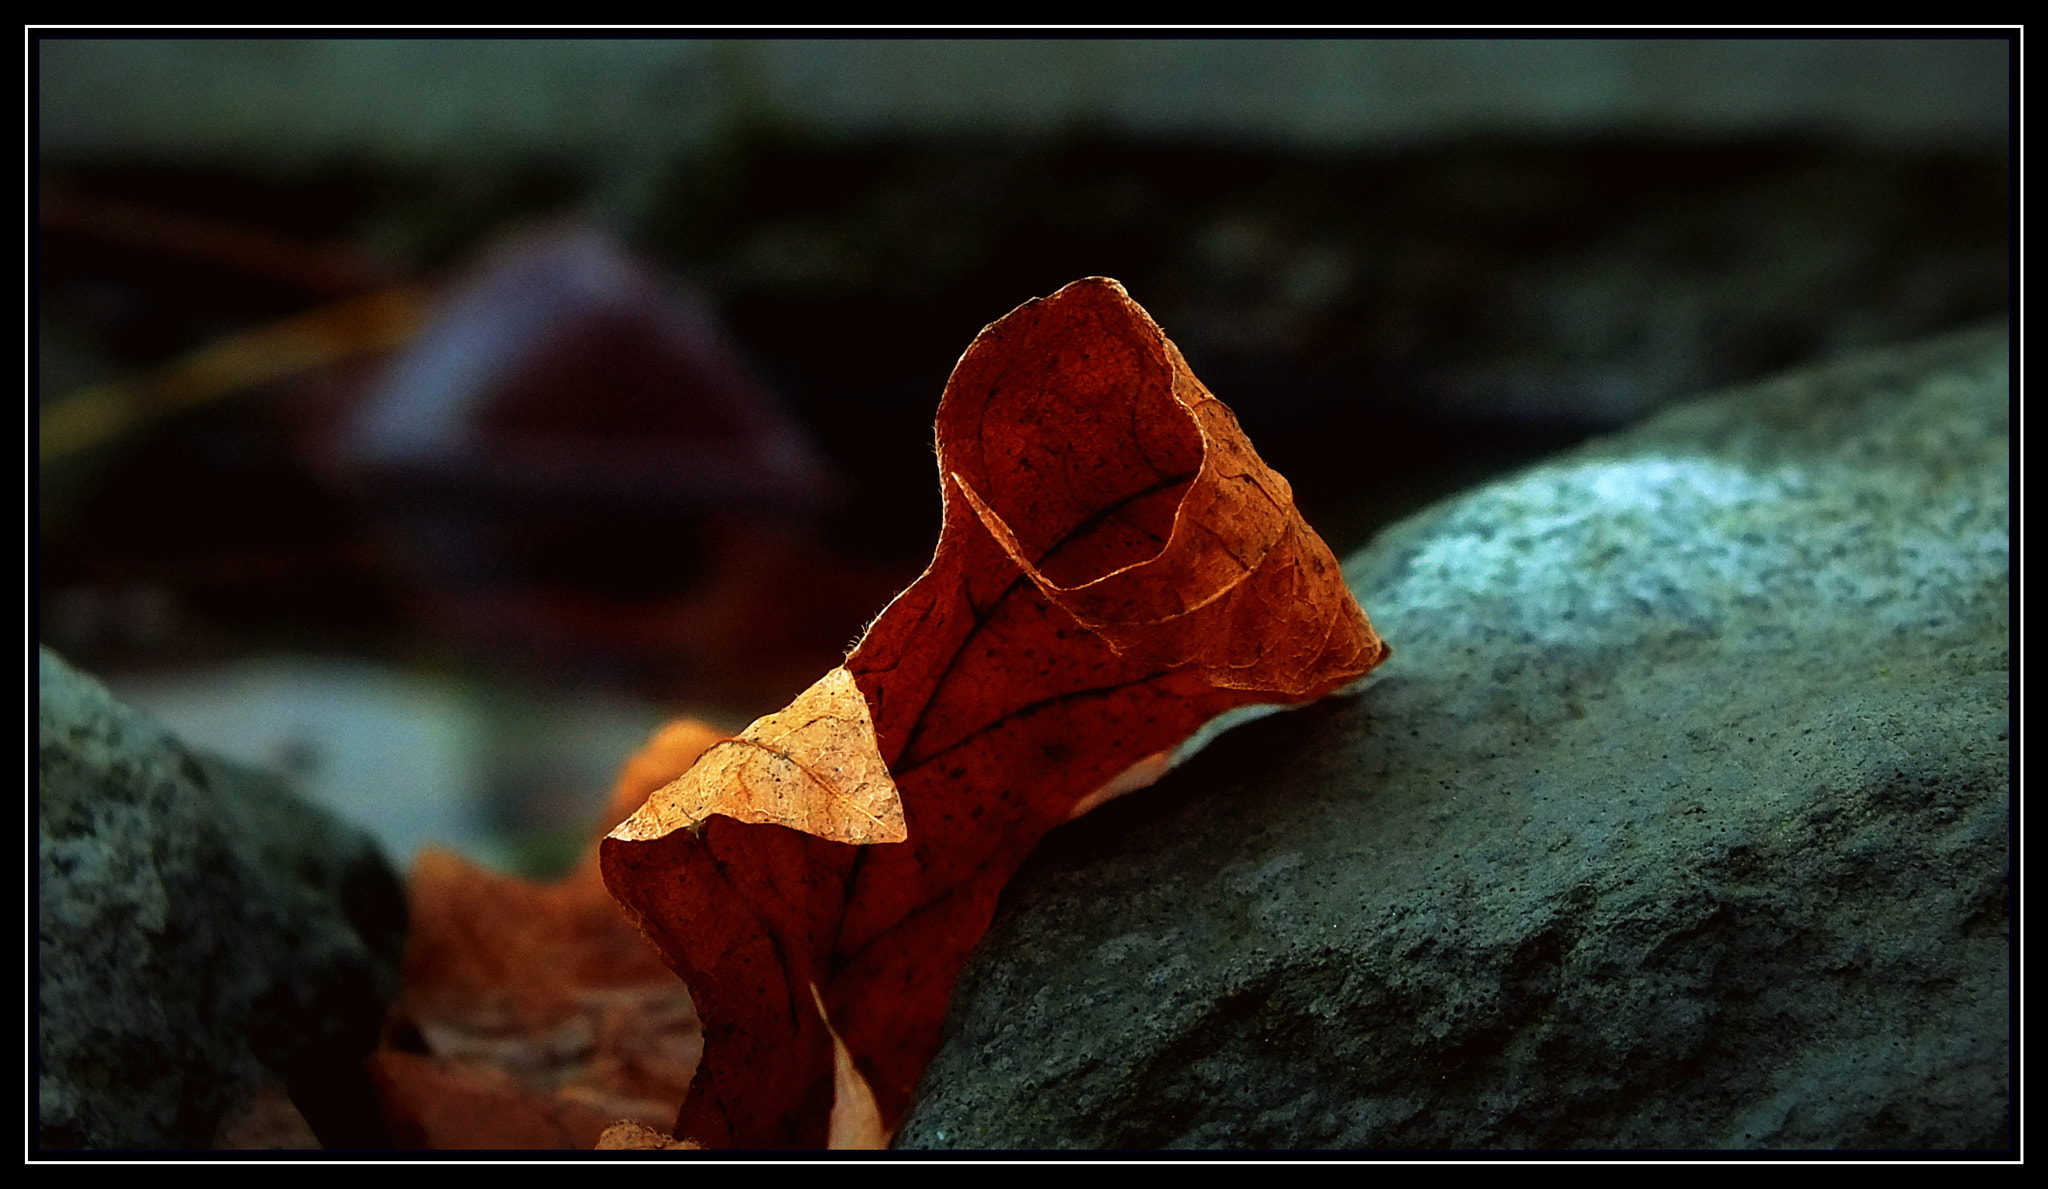 Photograph Between A Rock & A Hard Place by H. Becker on 500px